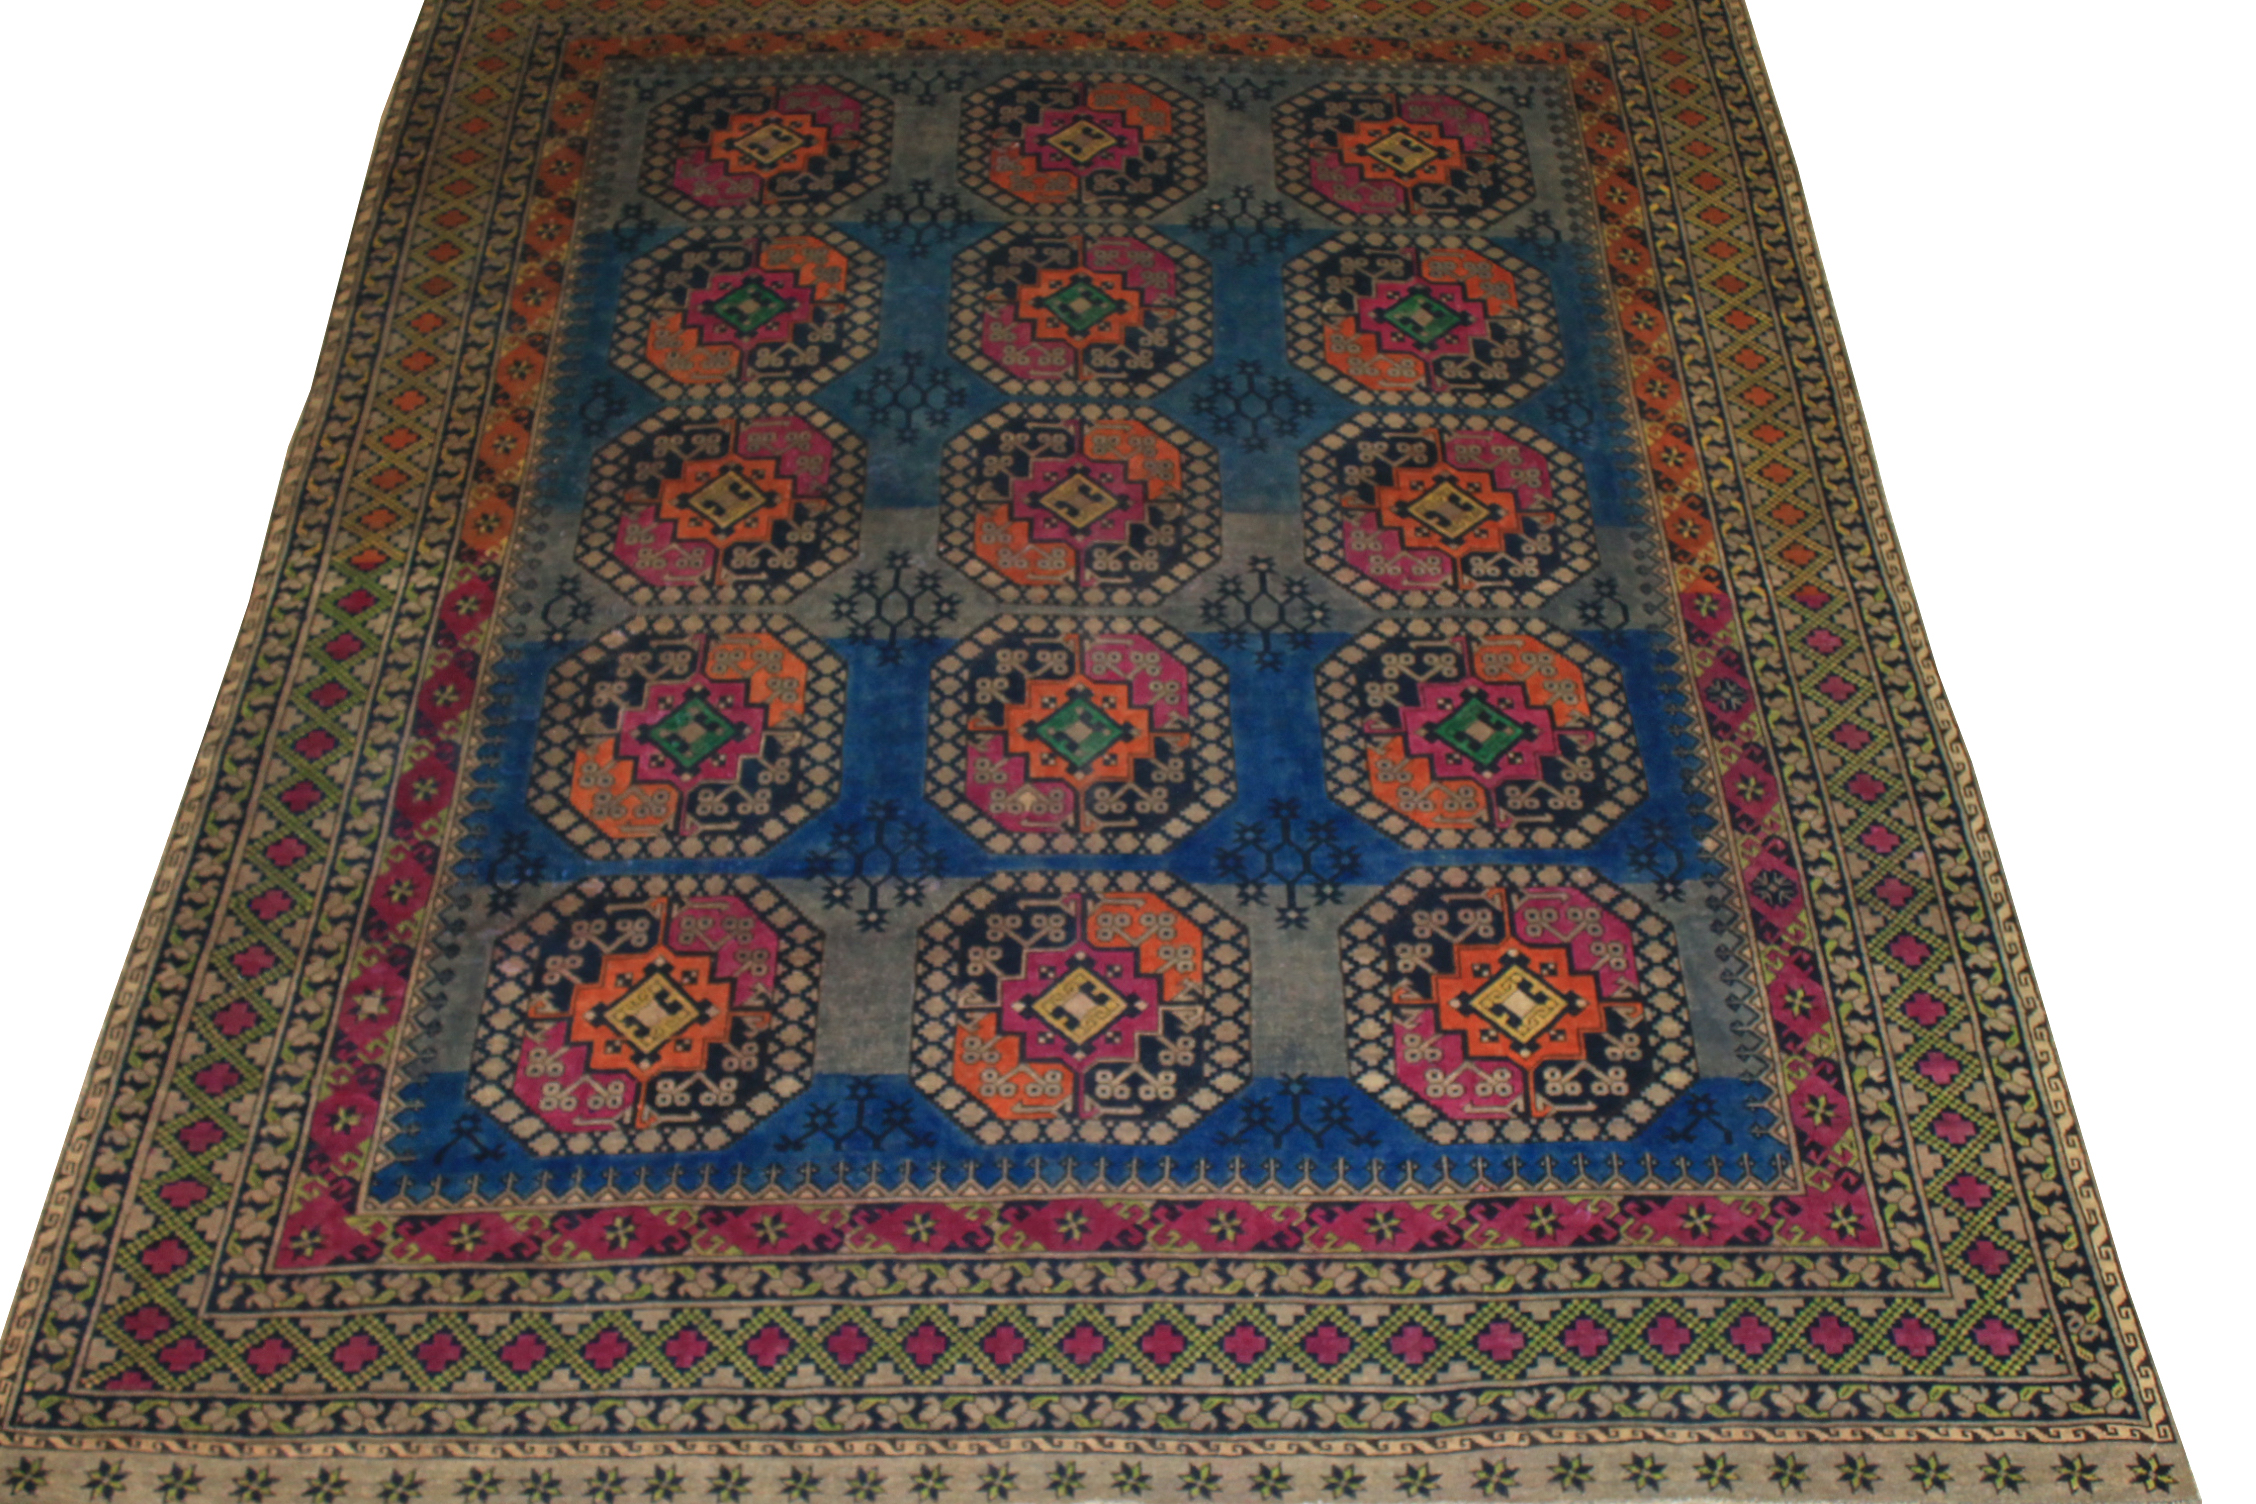 8x10 Vintage Hand Knotted Wool Area Rug - MR024472